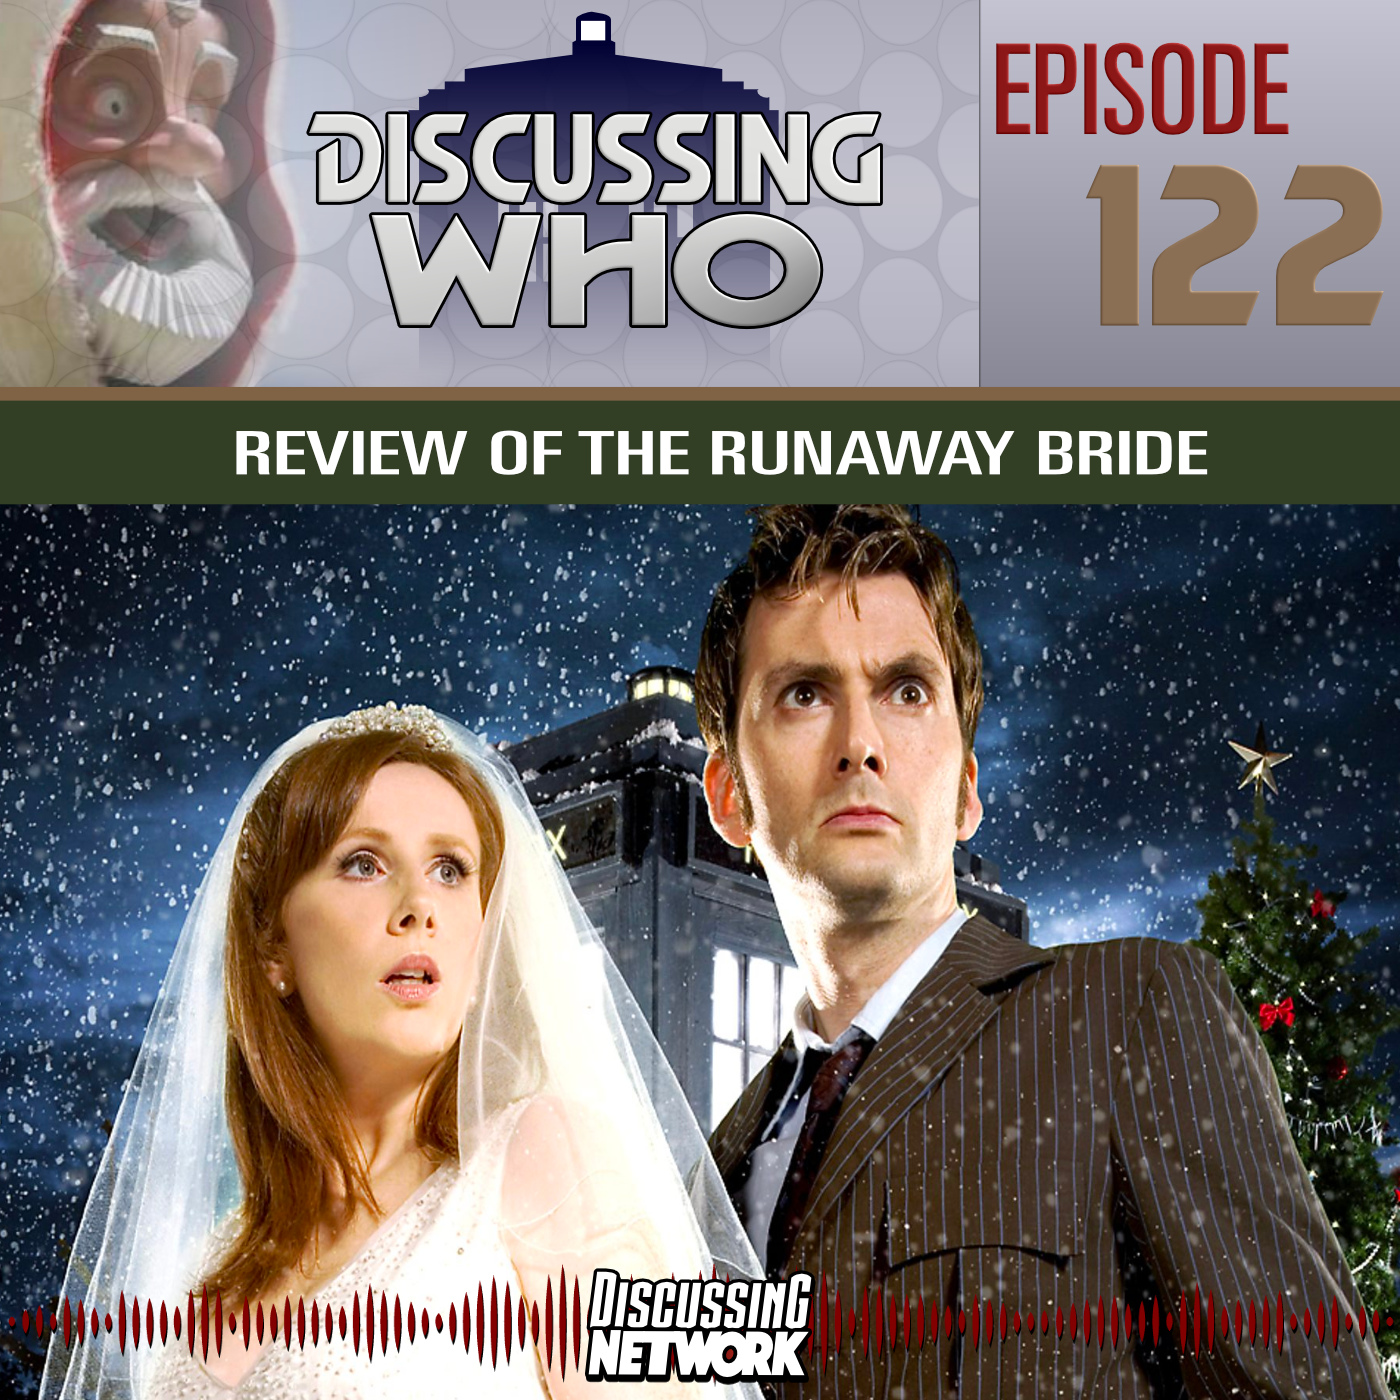 Runaway Christmas Bride.Episode 122 Review Of The Runaway Bride Doctor Who 2006